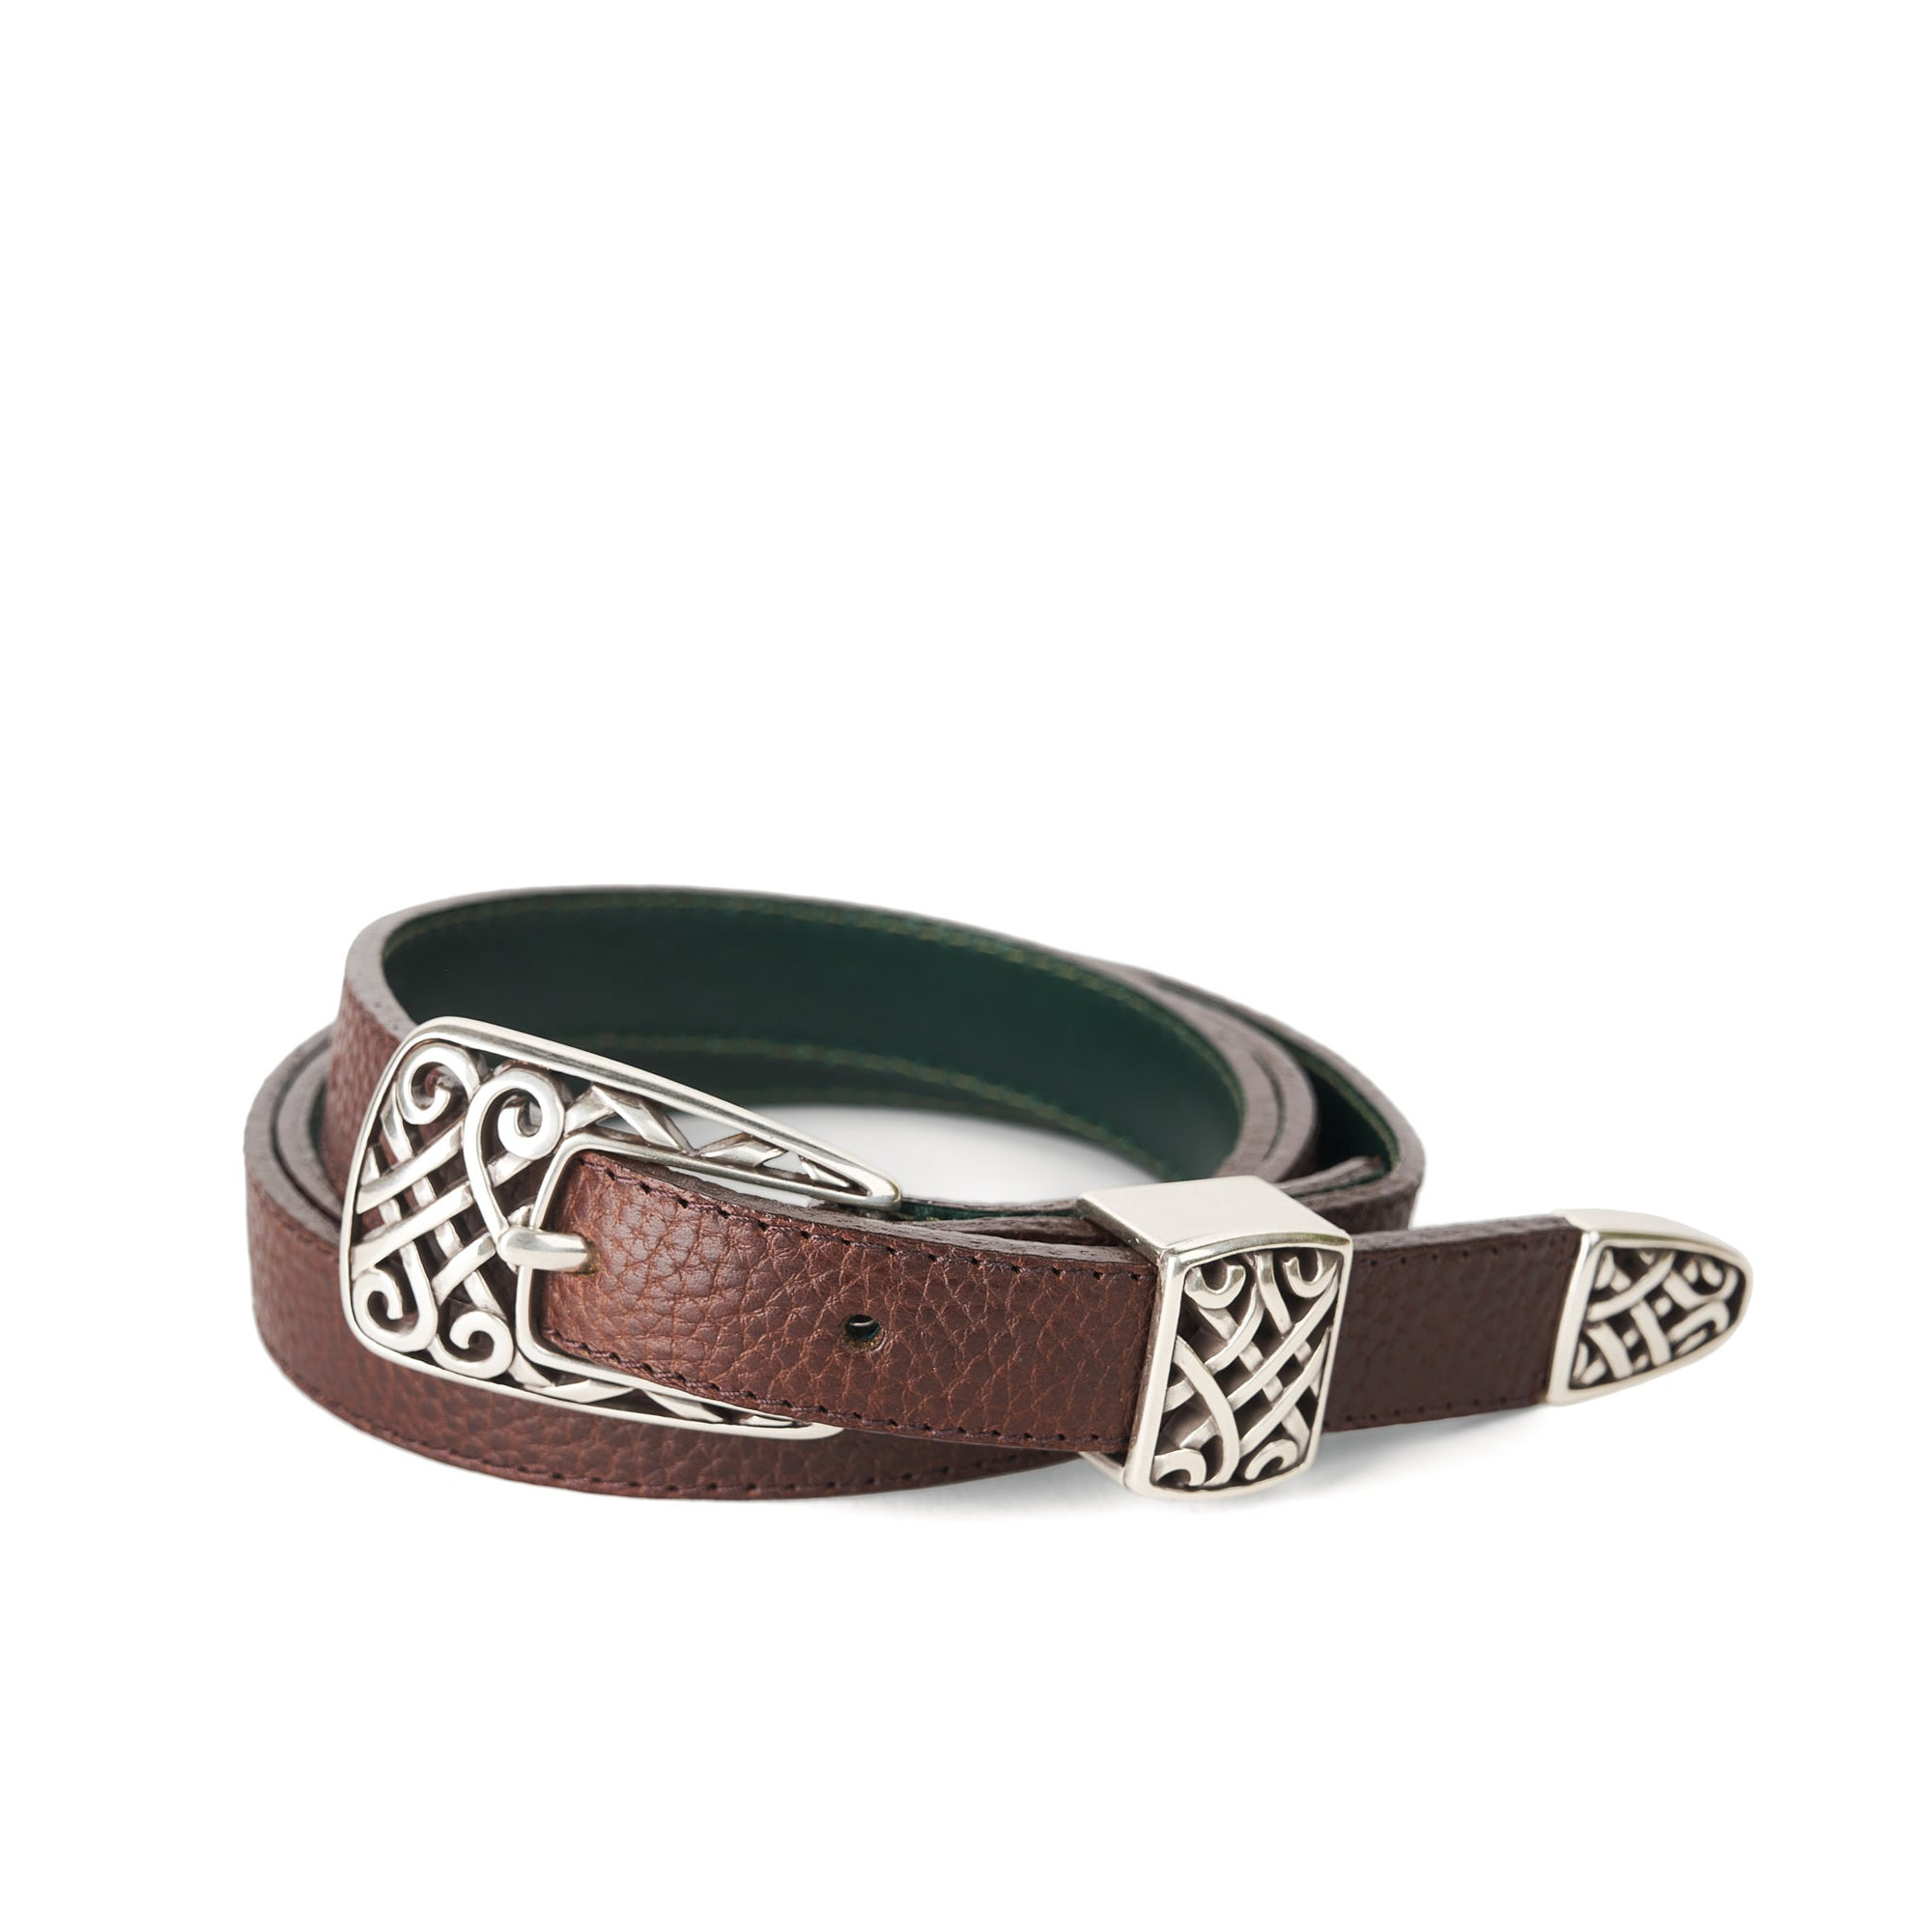 Holden Gallarus Celtic Belt - Dark Brown